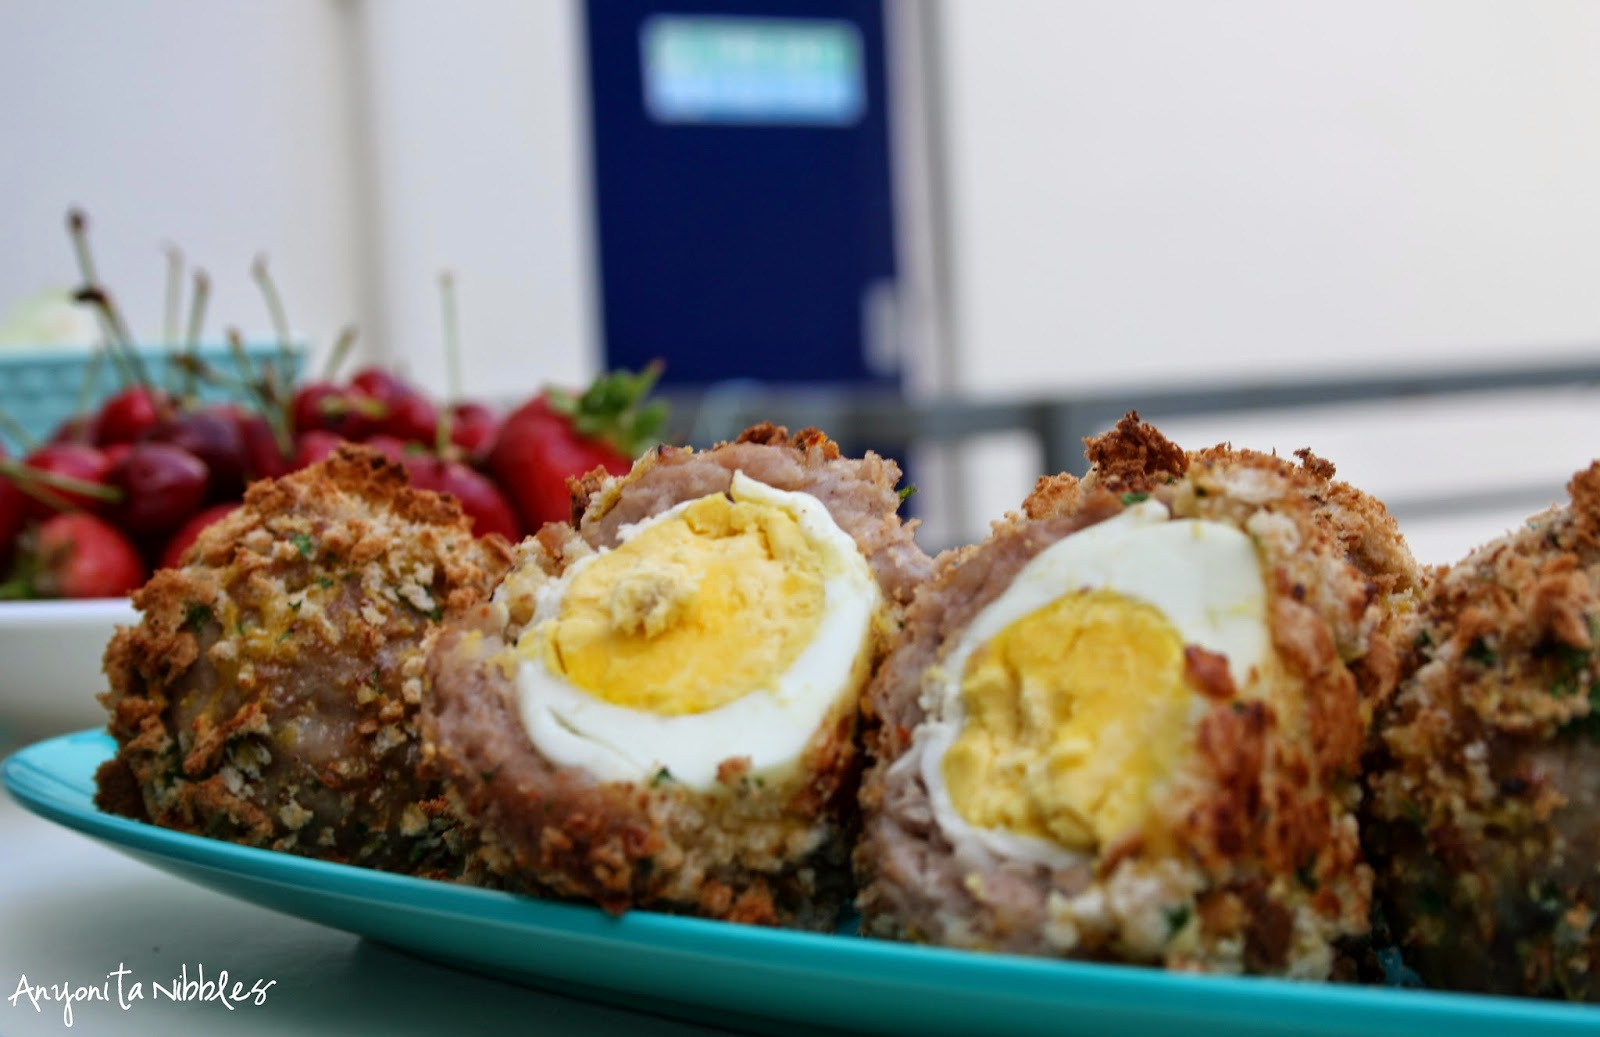 Perfect for a picnic: a tray of homemade Scotch eggs from Anyonita Nibbles